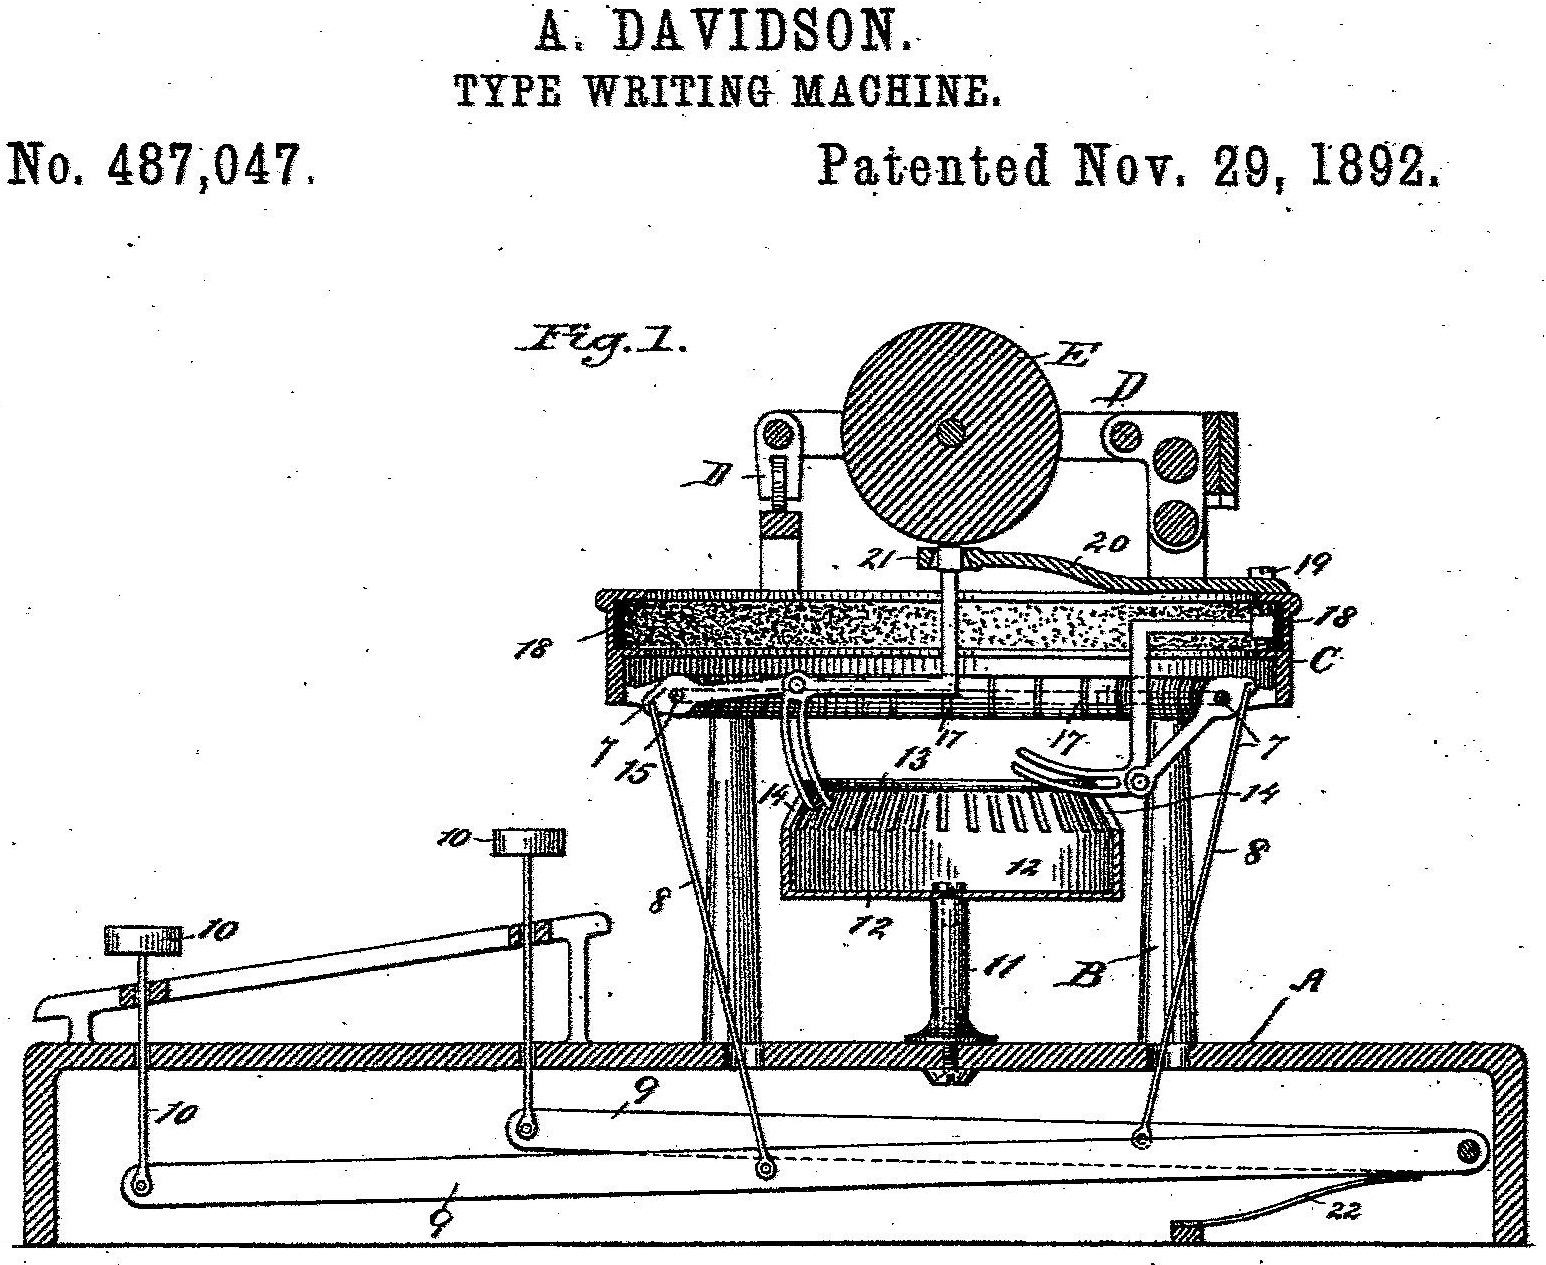 oz.Typewriter: On This Day in Typewriter History